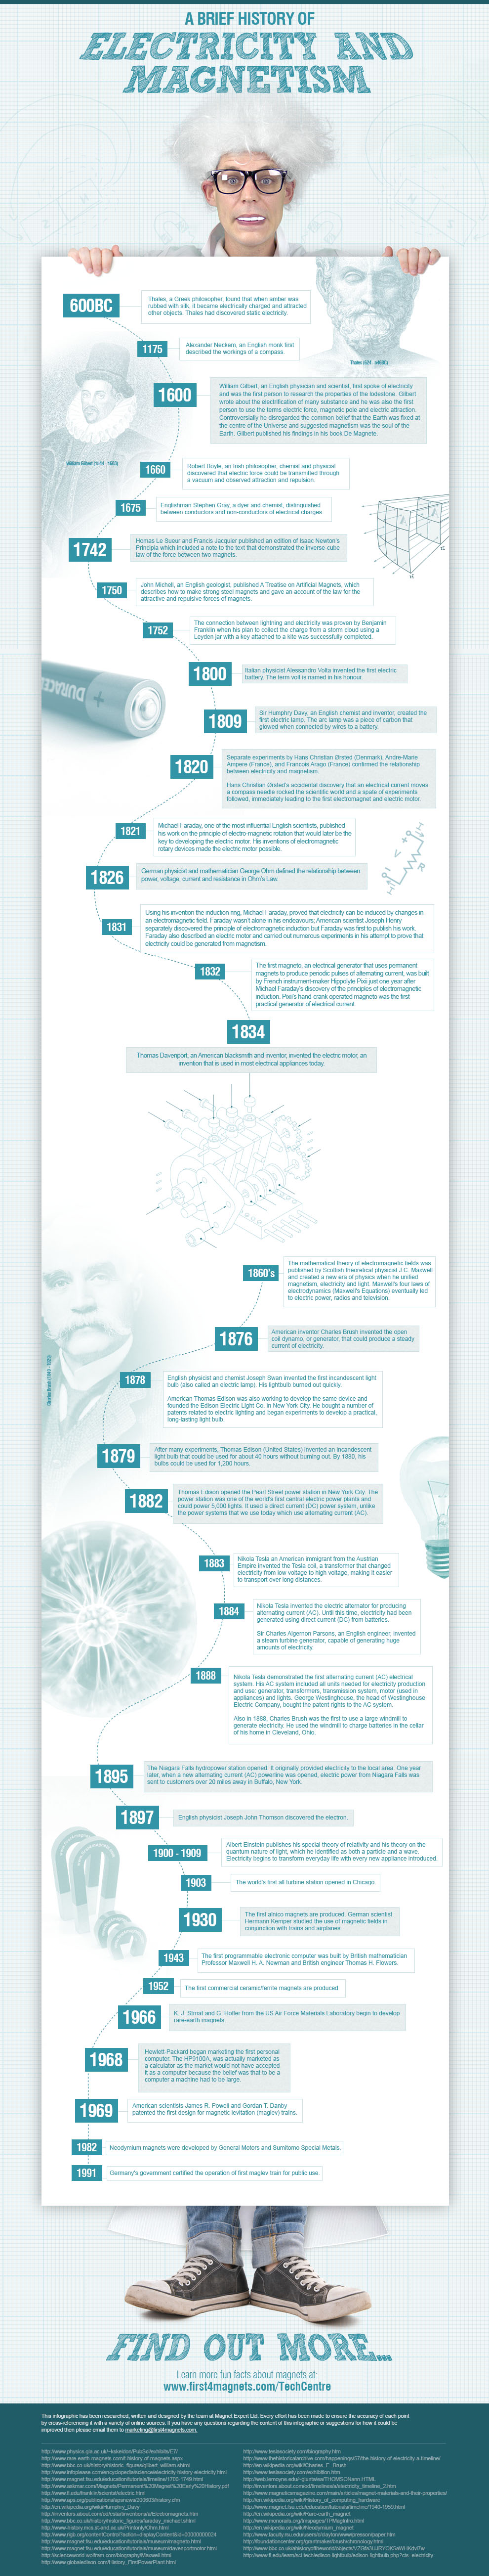 Electricity History Infographic